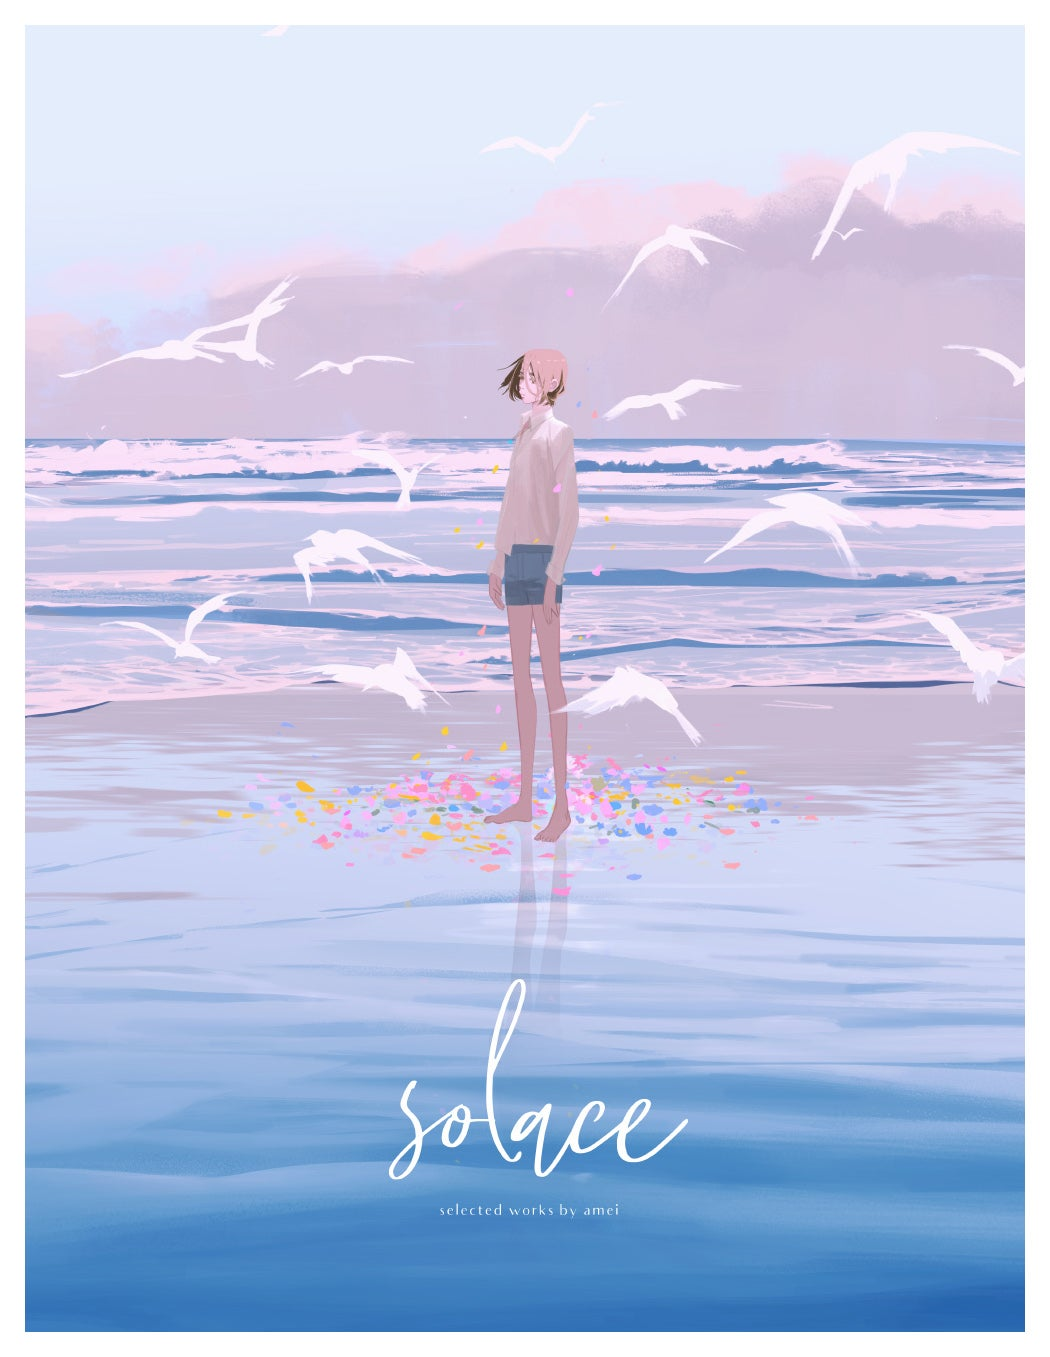 Image of solace: selected works by amei